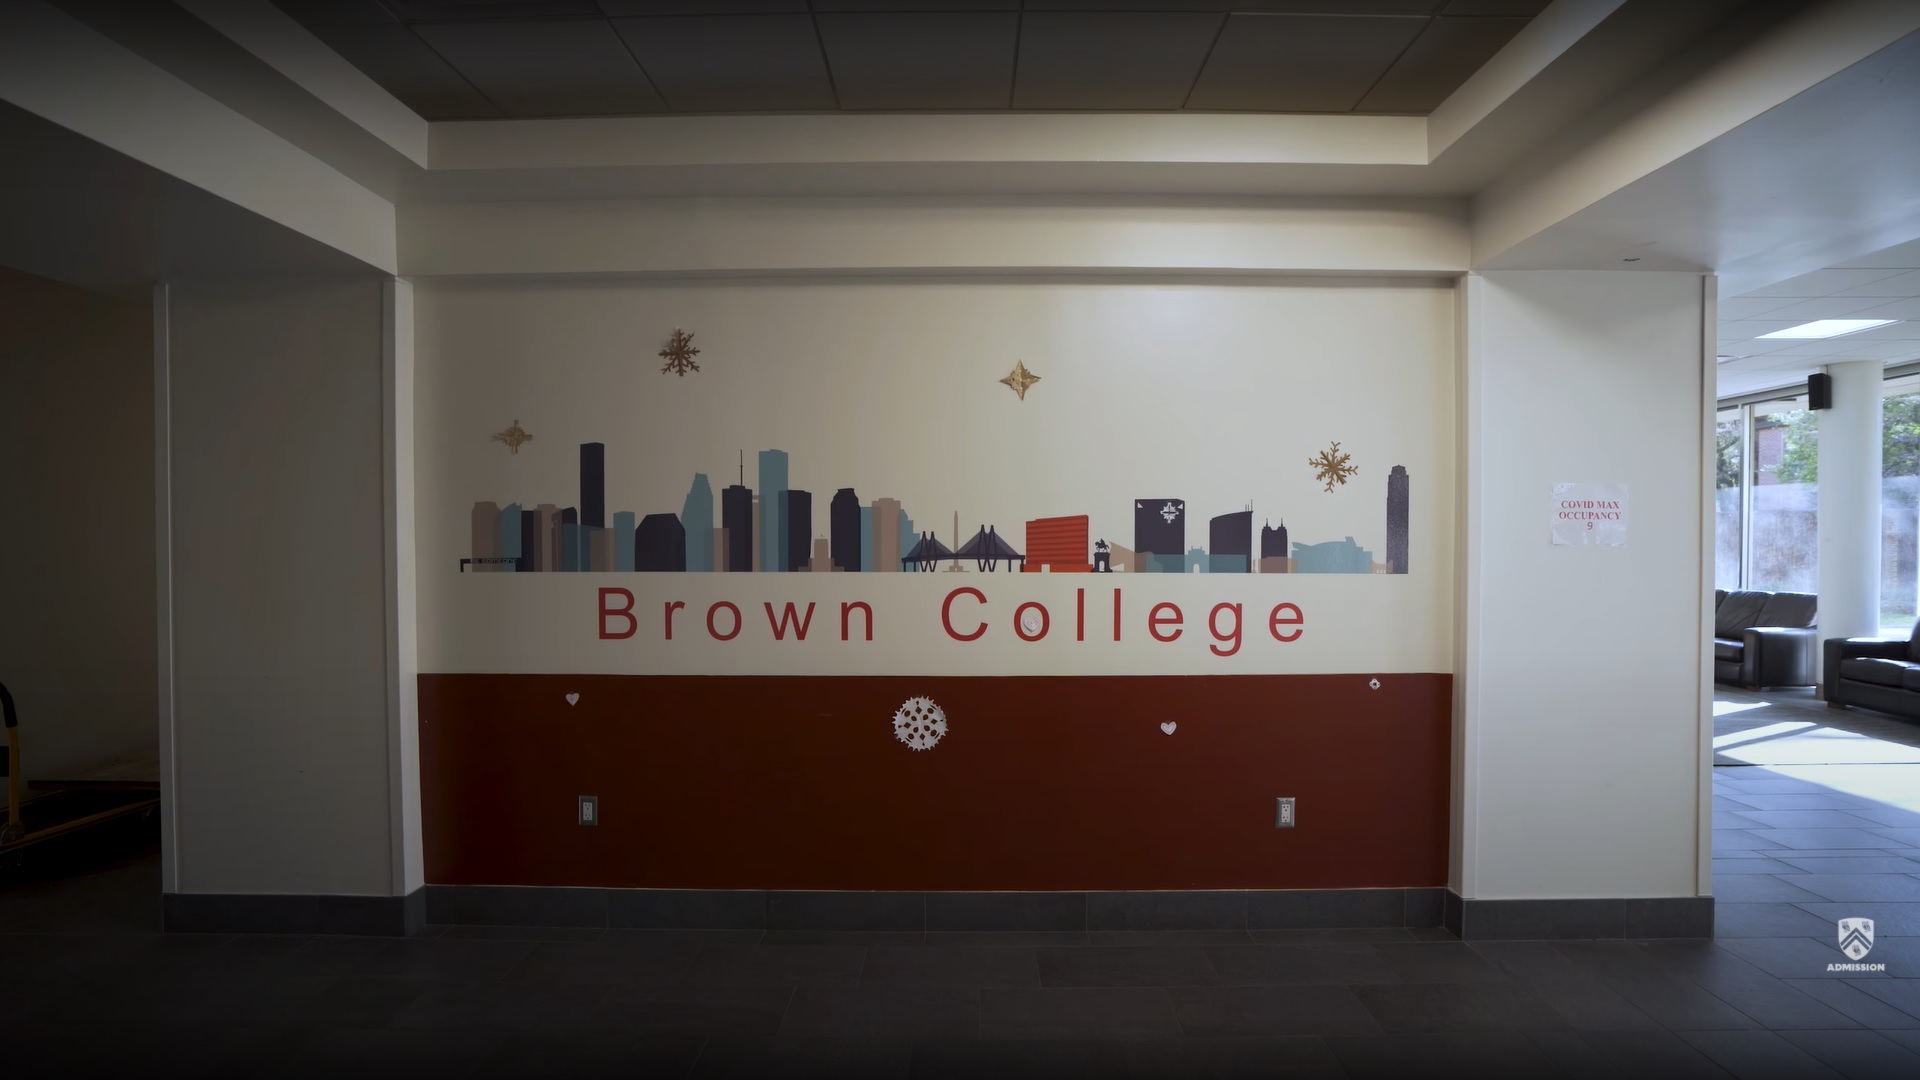 """Picture shows a wall inside of Brown College with a mural painted on it that says """"Brown College."""""""